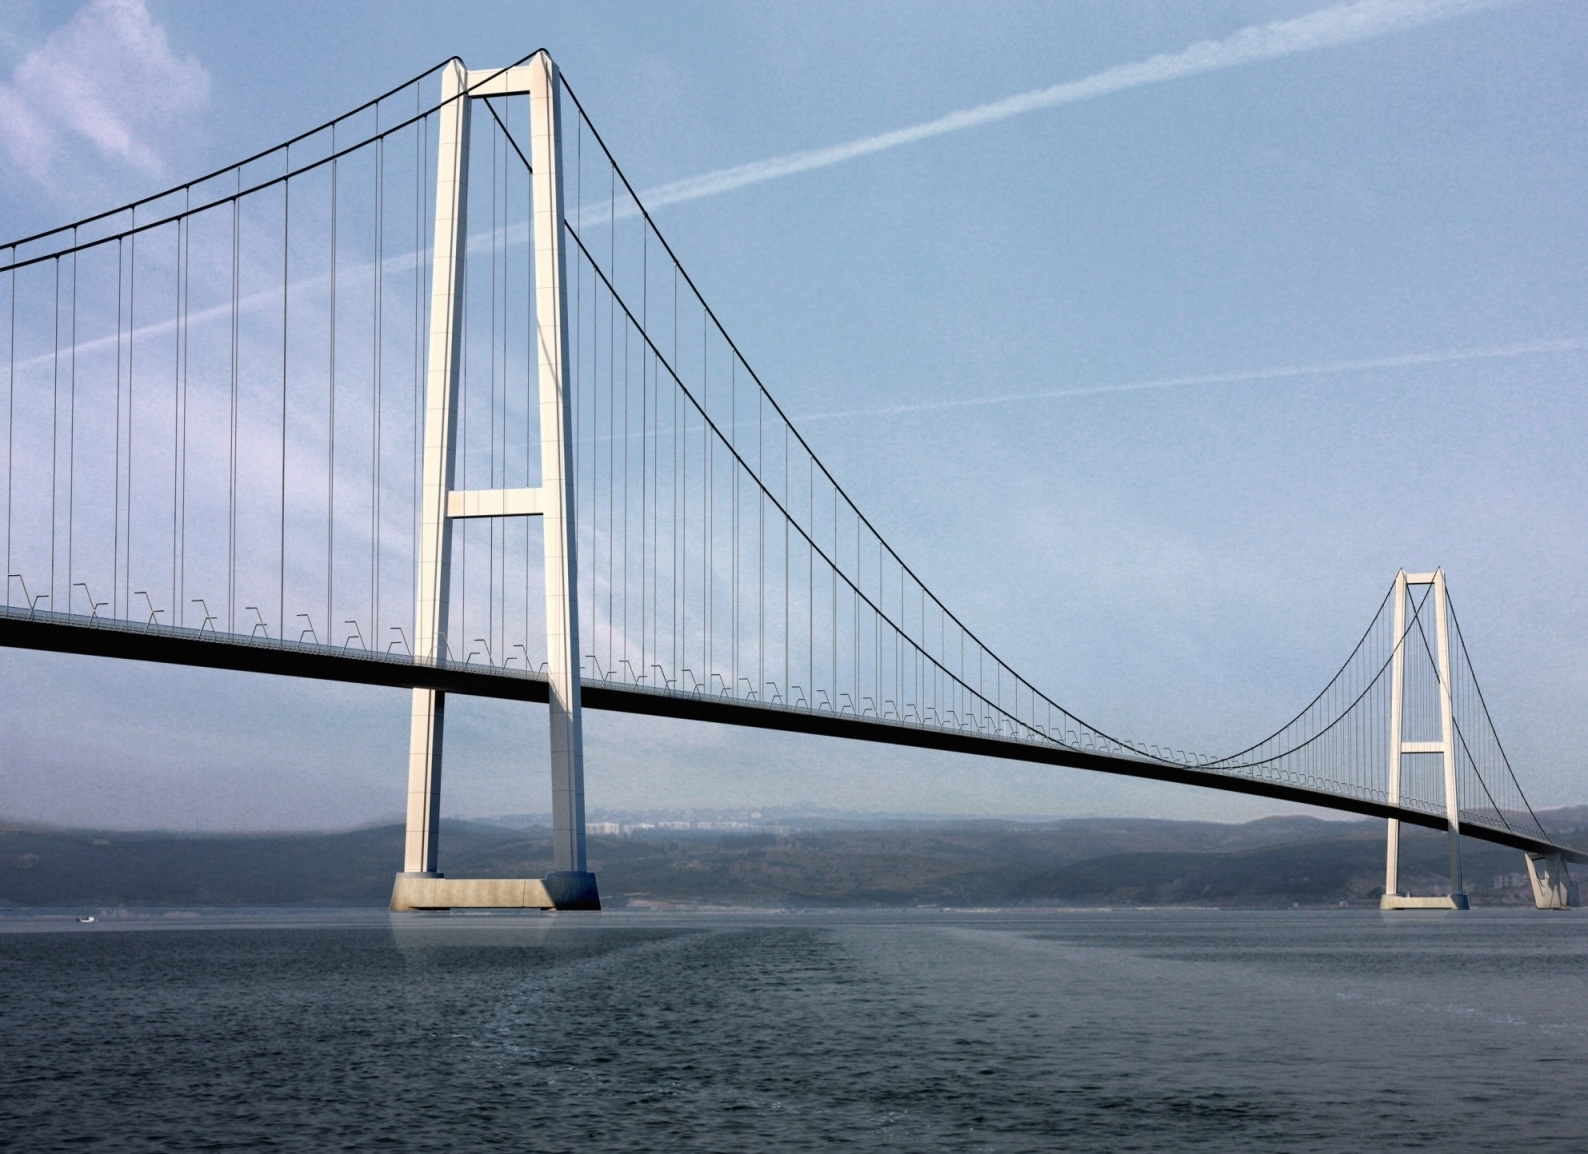 Turkey's Izmit Bay Bridge